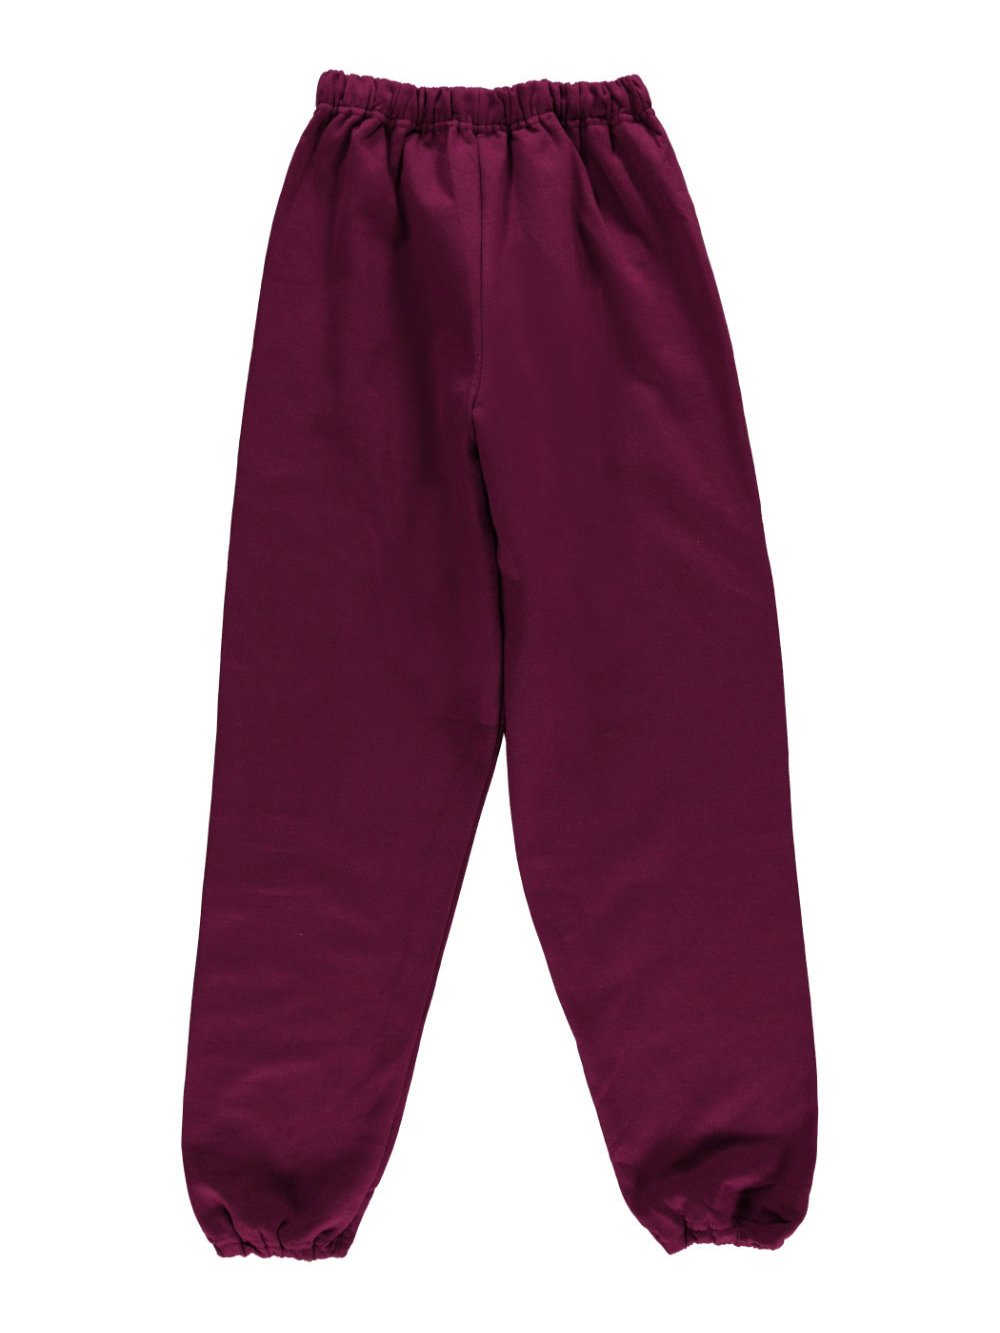 Jerzees Basic Fleece Sweatpants